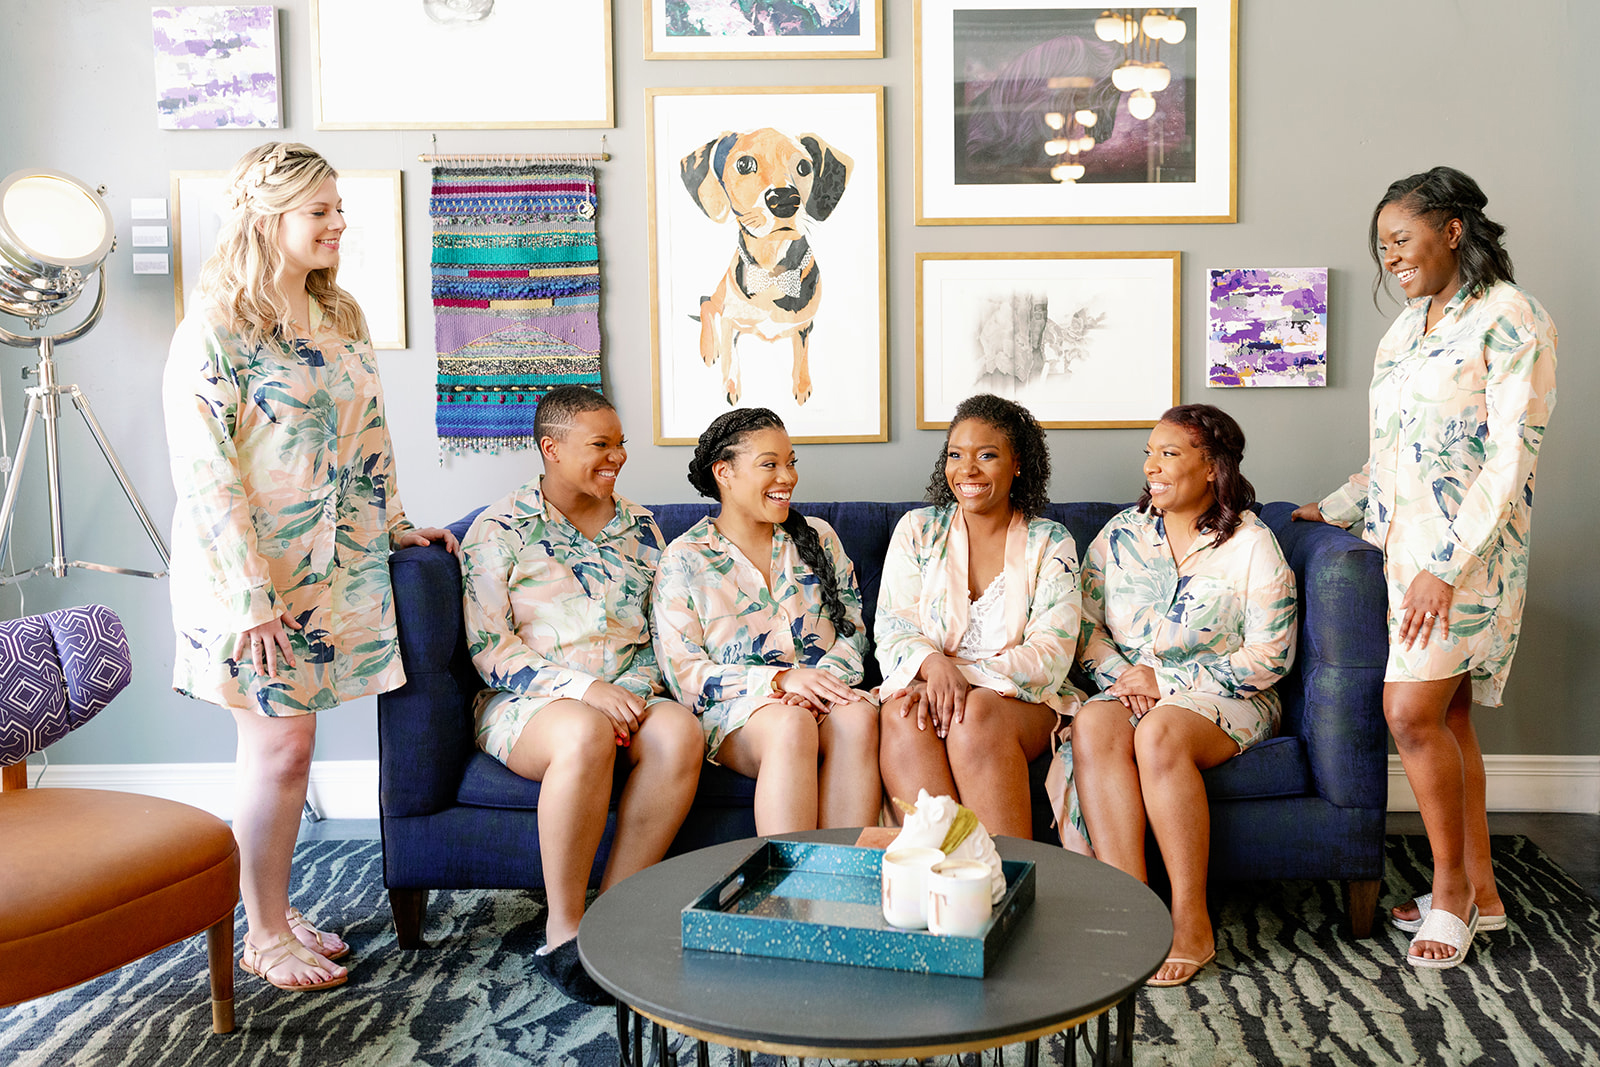 bride and bridesmaids in matching loungewear